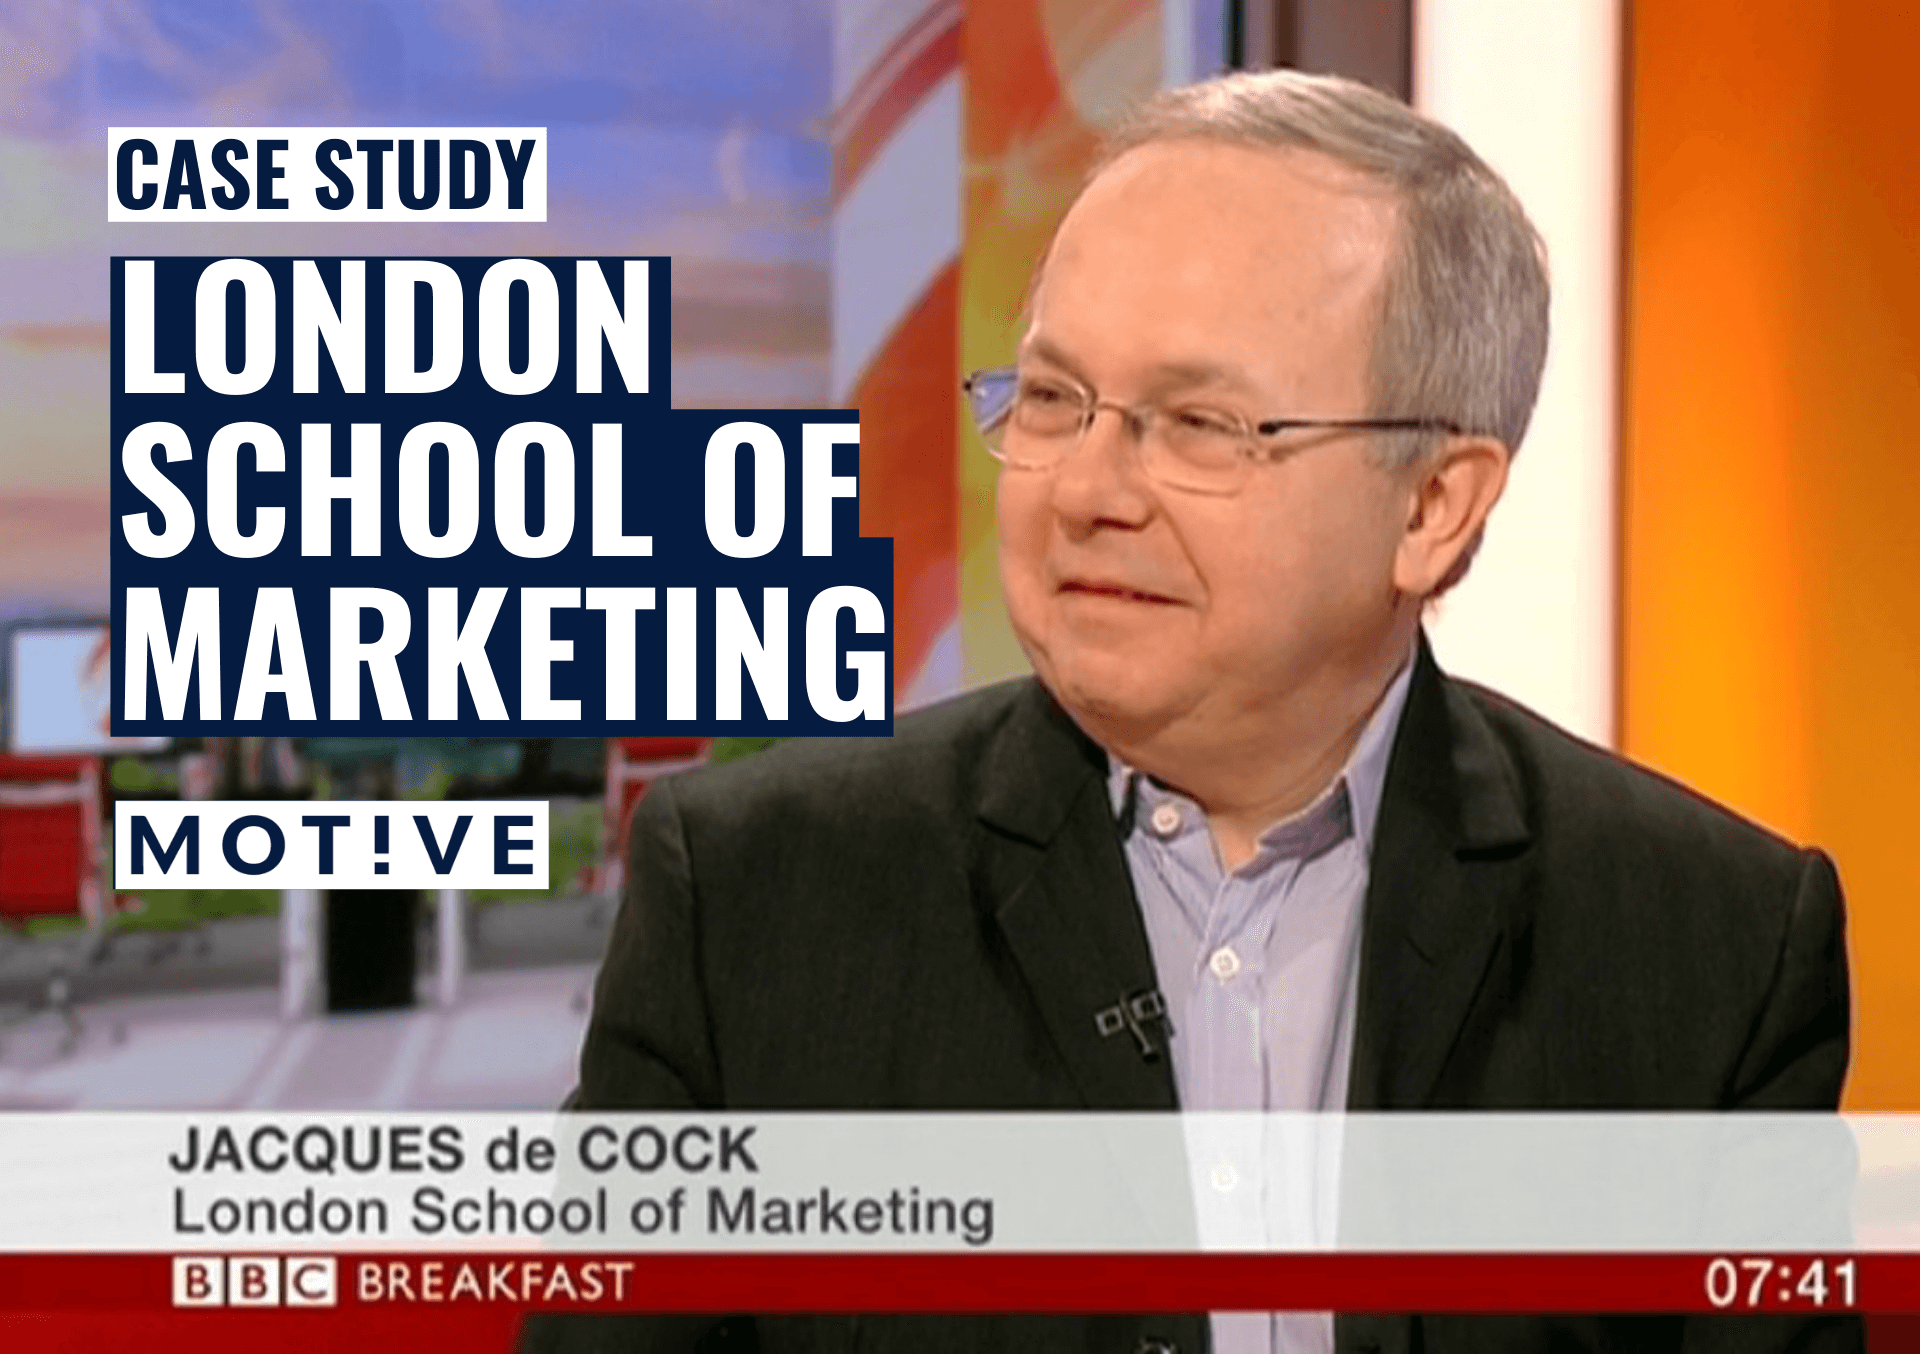 London School of Marketing